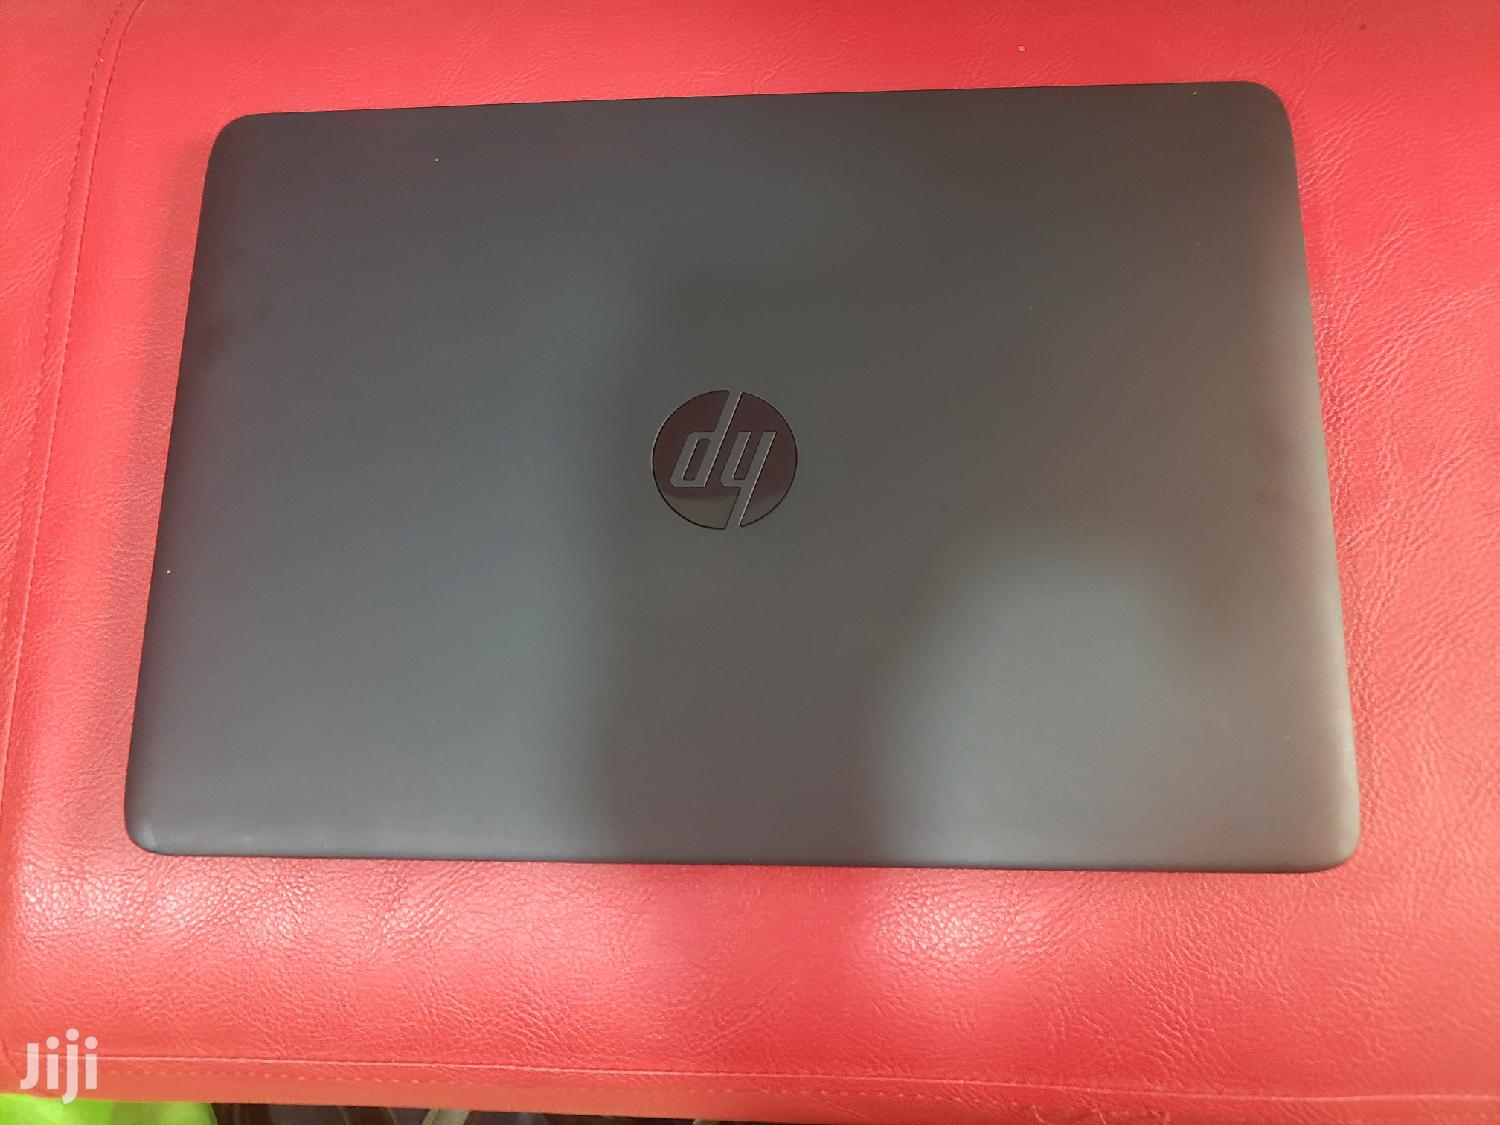 New Laptop HP EliteBook 840 G2 8GB Intel Core i5 HDD 500GB | Laptops & Computers for sale in Kampala, Central Region, Uganda